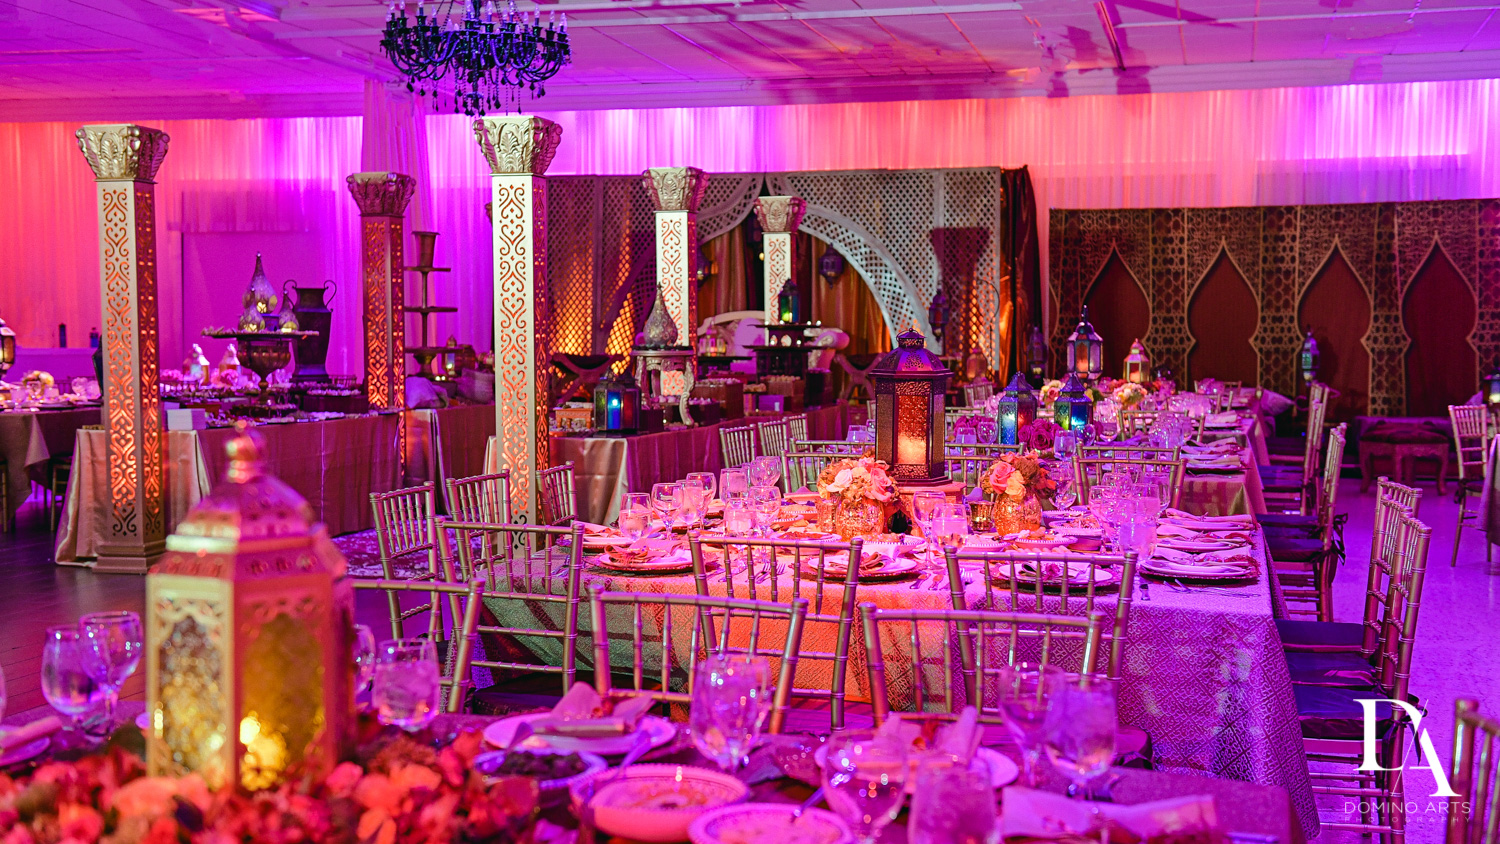 purple decor at Authentic Morrocan Jewish Henna Party by Domino Arts Photography